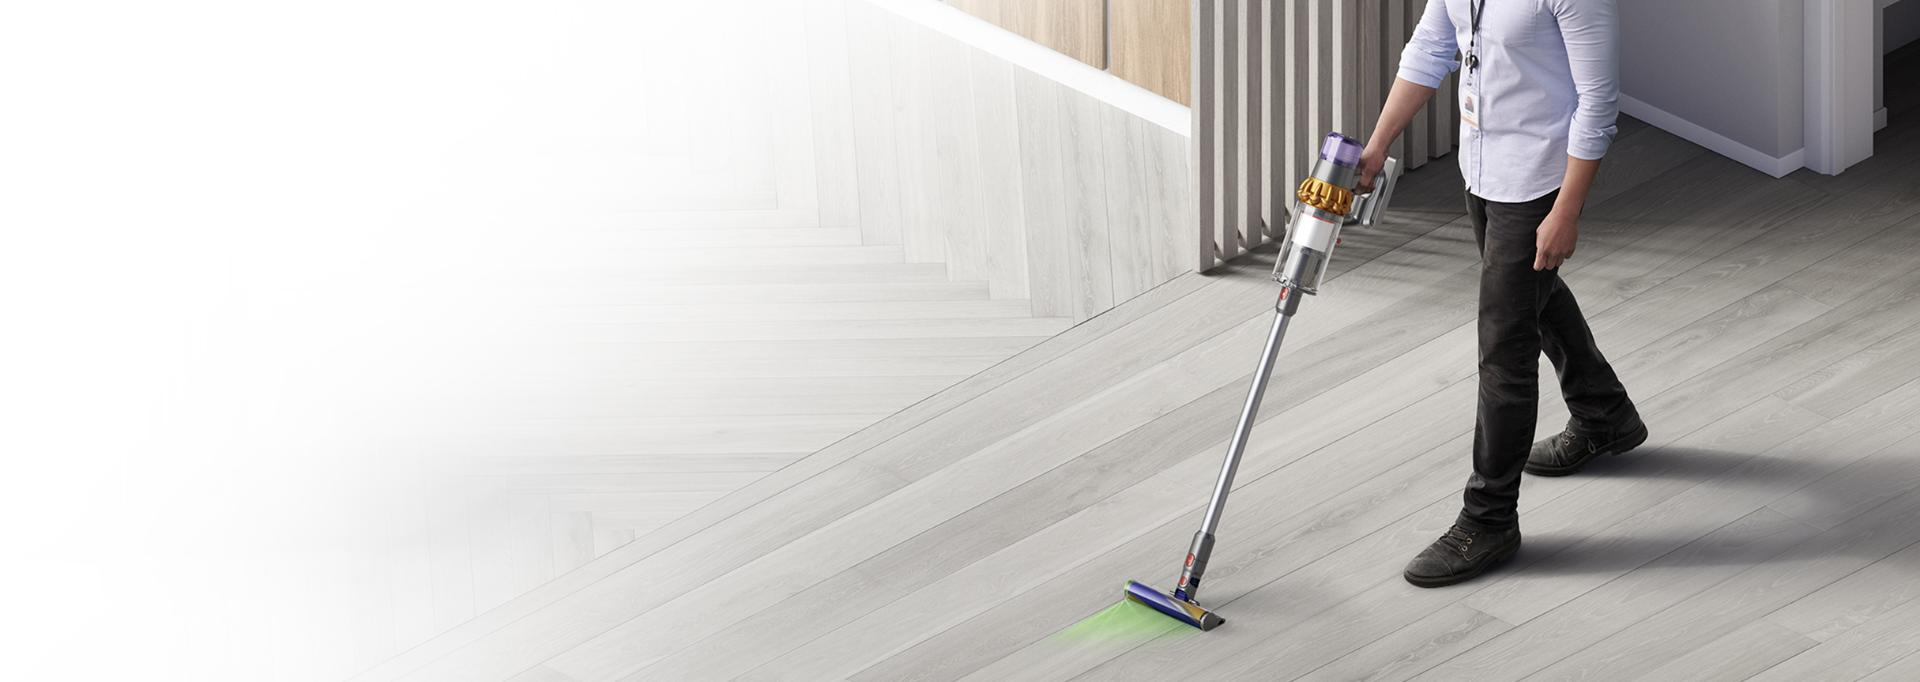 Man cleaning work space with Dyson cordless vacuum